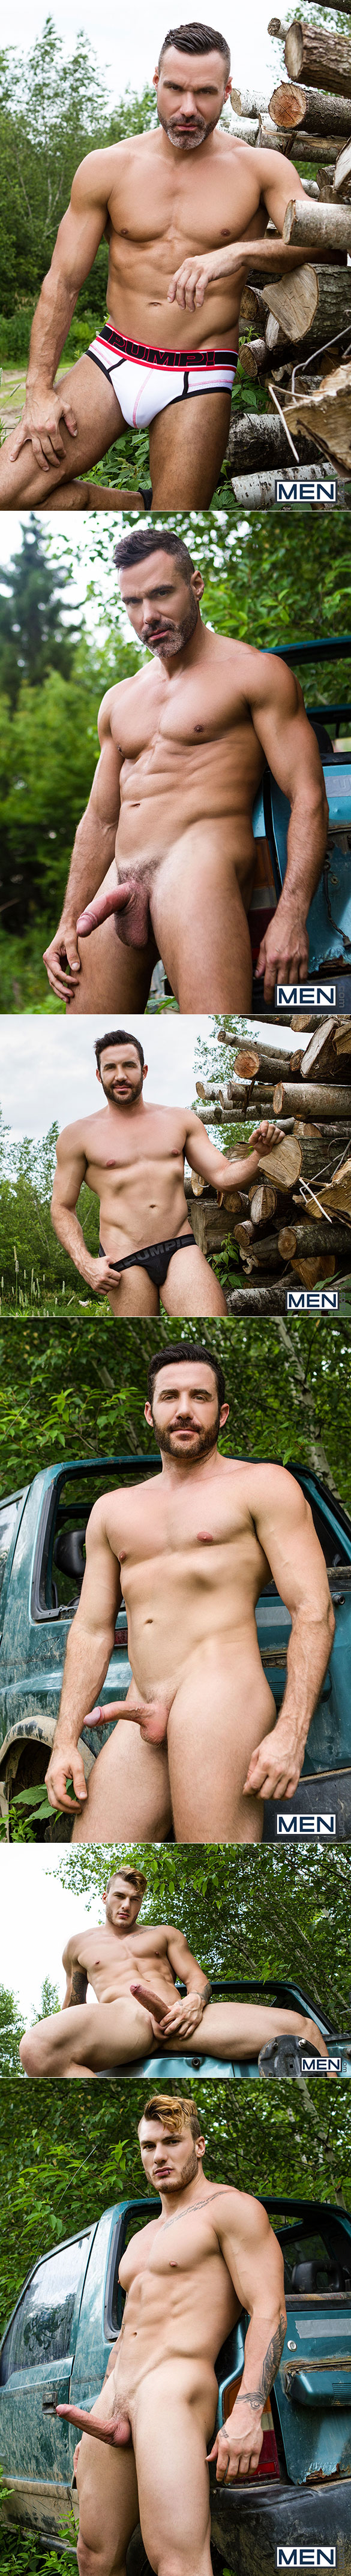 "Men.com: William Seed, Manuel Skye and Jessy Bernardo's hot outdoor threeway in ""Exposure, Part 2"""